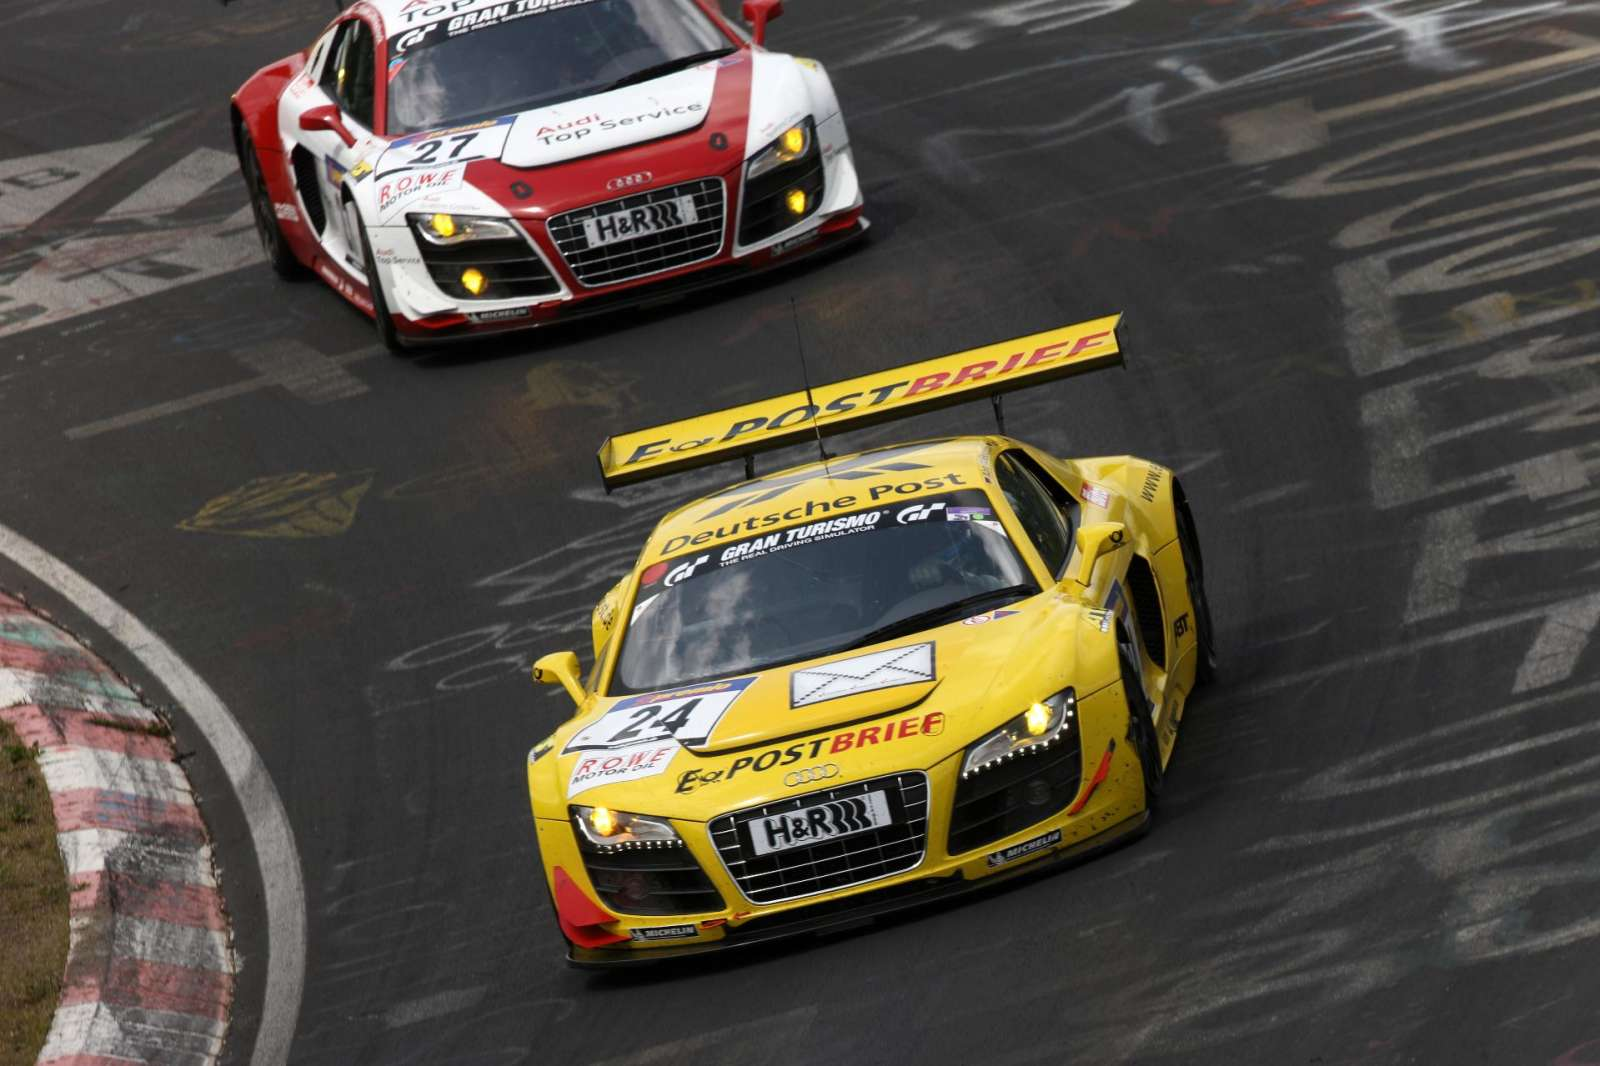 To Take Four R LMS Cars To The Ring - Audi car features